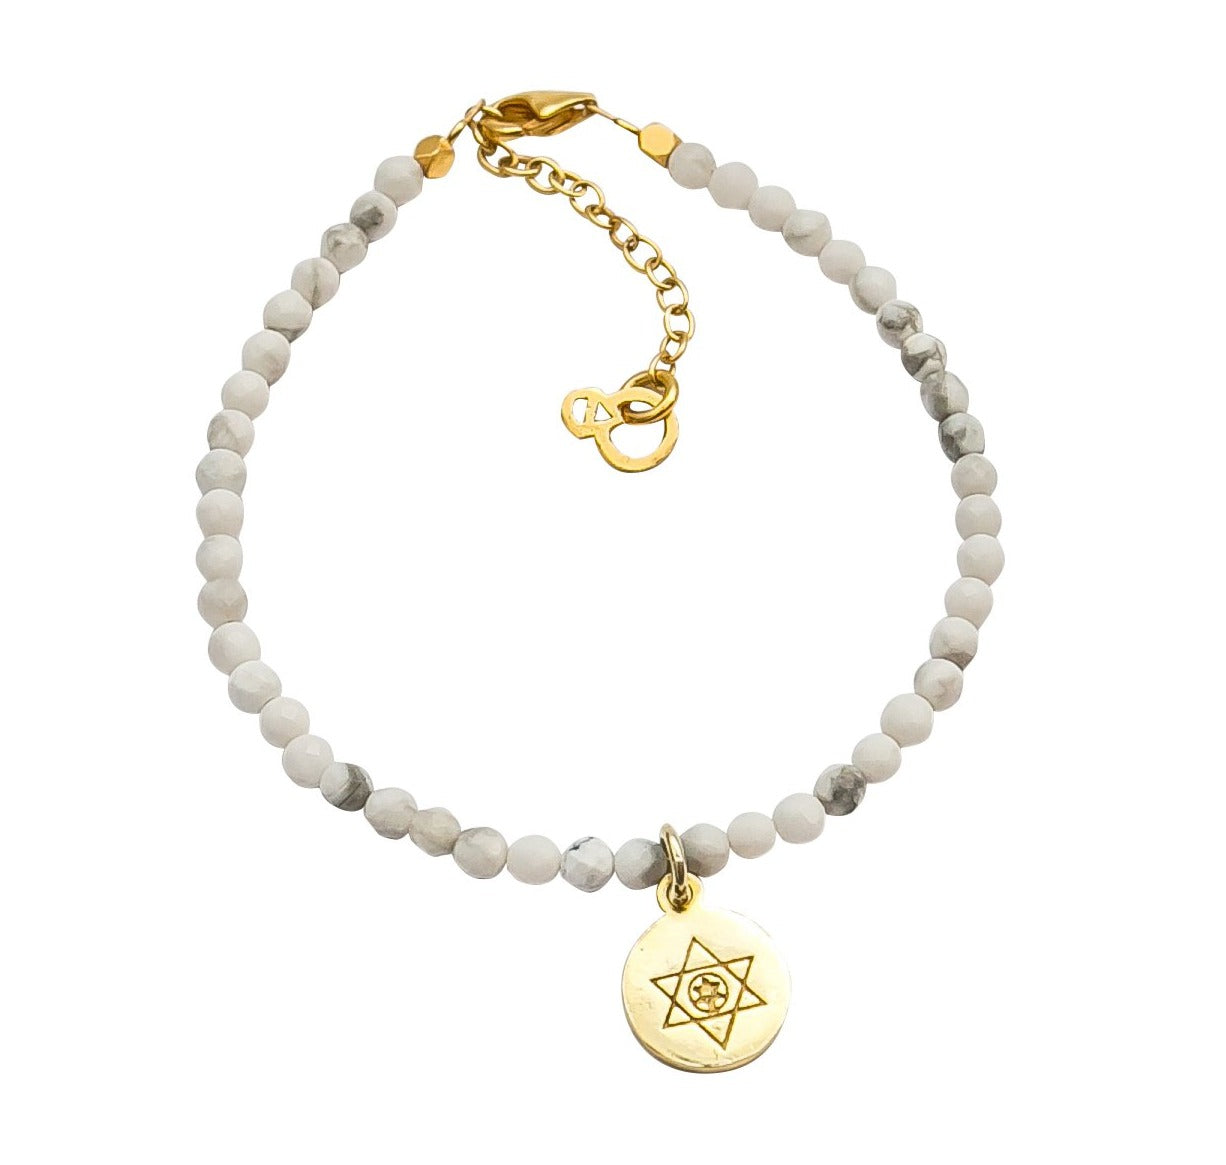 HEALTH PROTECTION BRACELET - GOLD